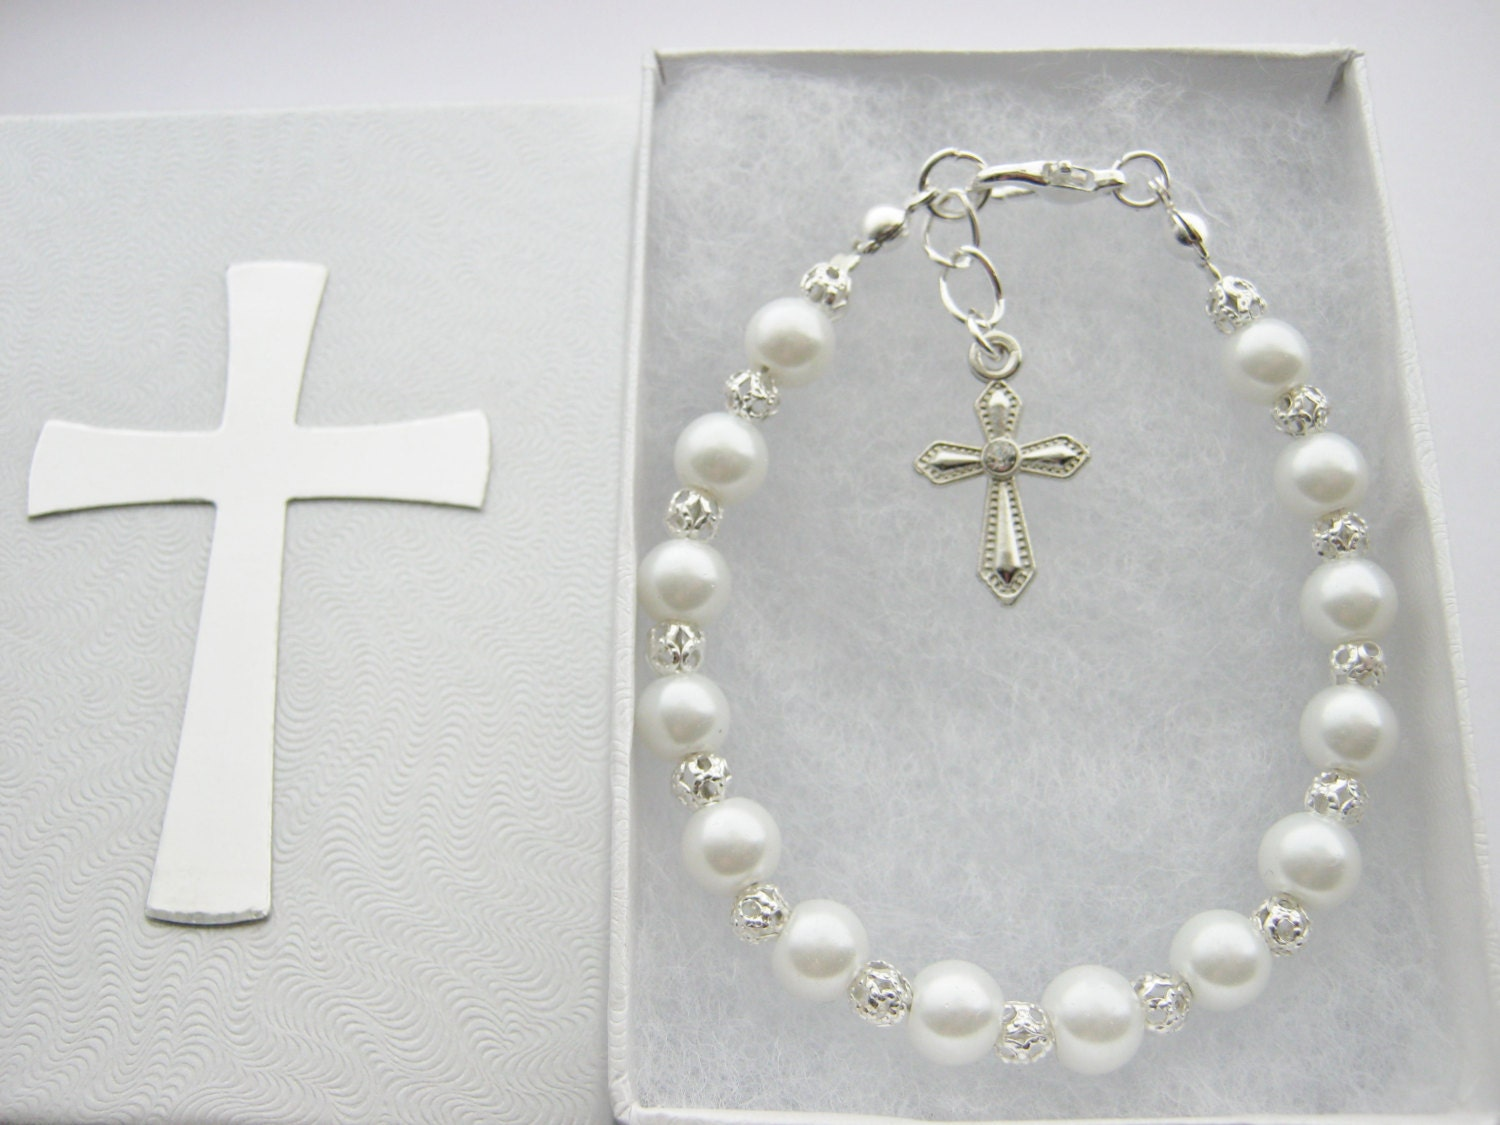 First Communion Bracelet with White Pearl Beads Cross Chalice Angel Angel Wings Charm Confirmation Jewelry Girls Religious Gifts